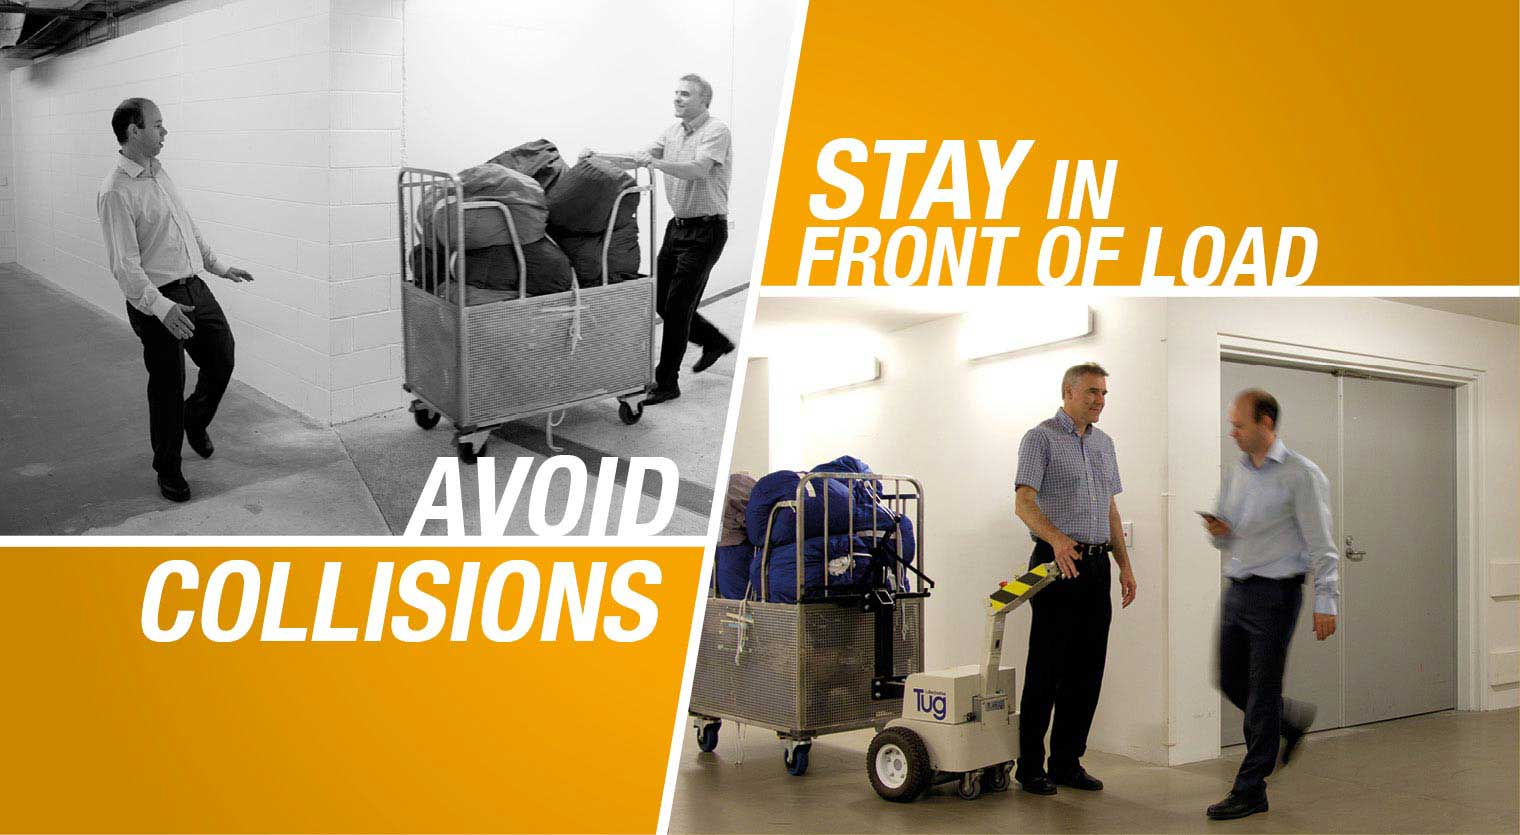 Avoid collisions. Stay in 'front of load'.